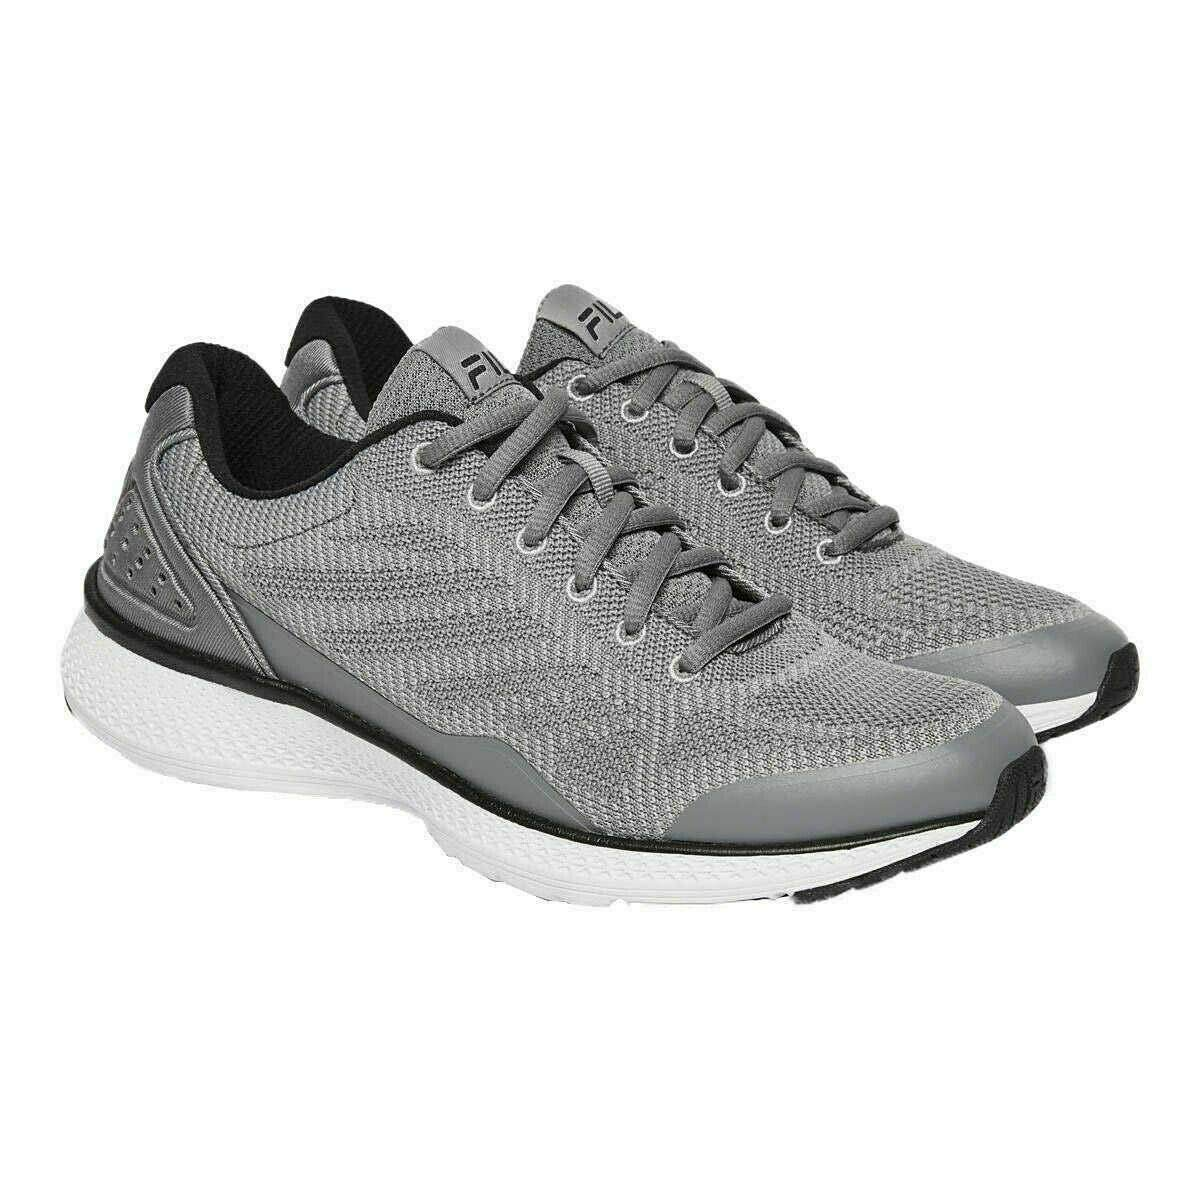 Fila Men's Memory Foam Athletic Running Shoes Grey or Black (GreyBlack, 12 M US)